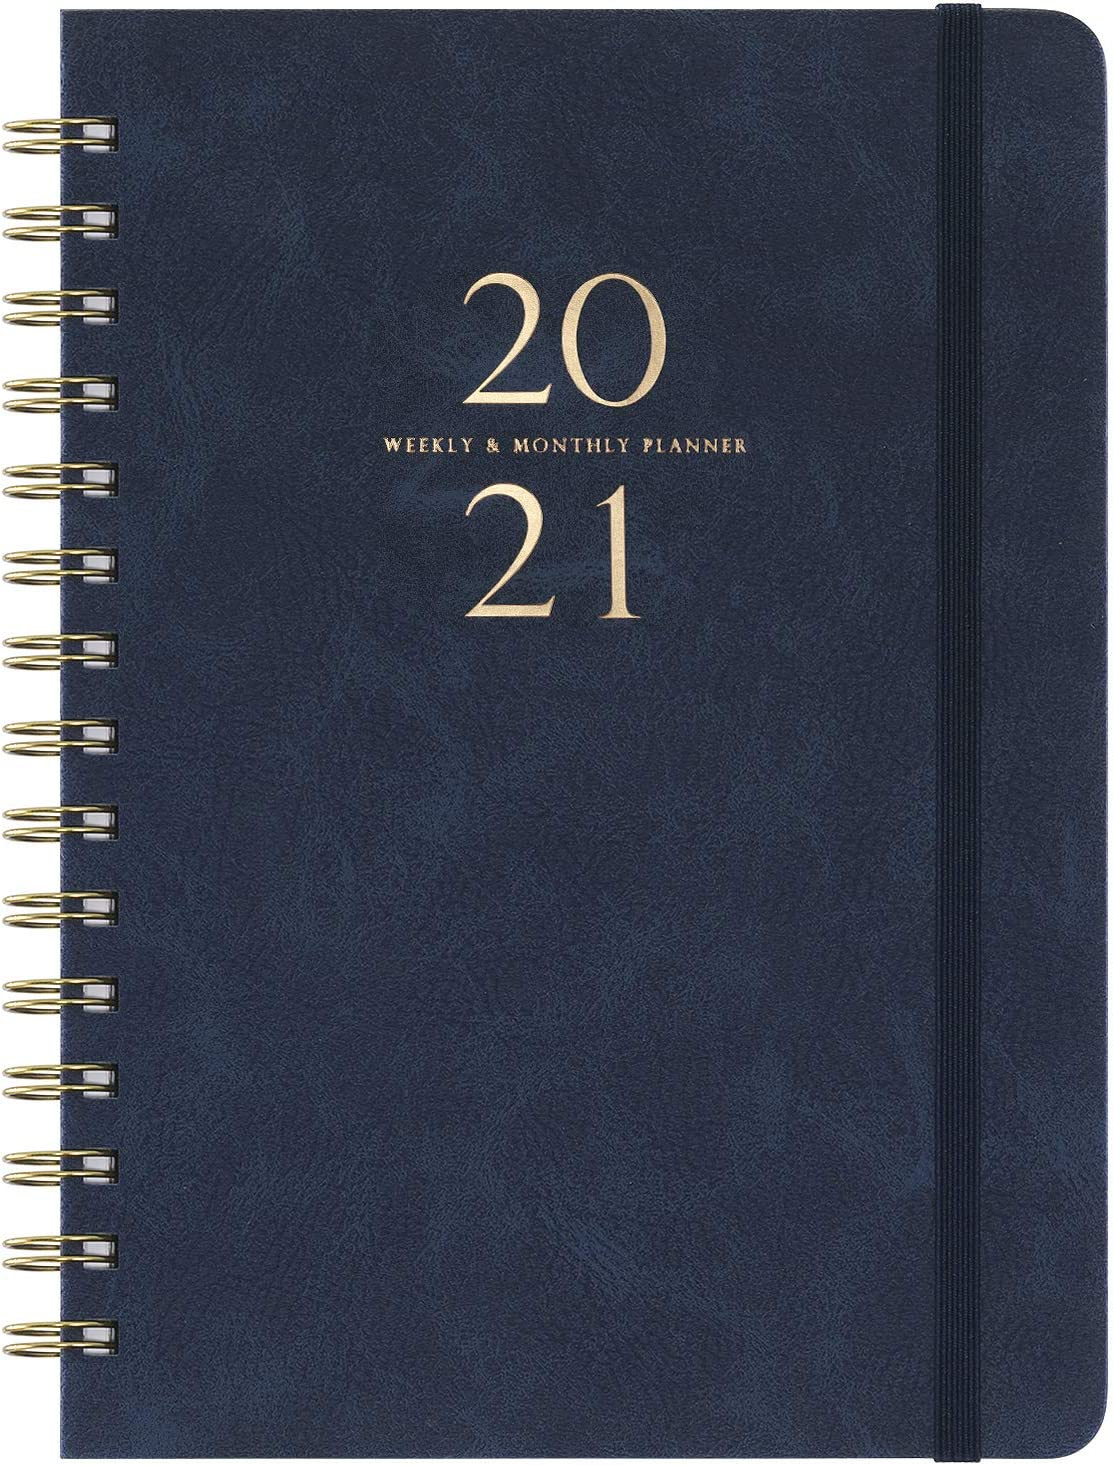 "2020-2021 Planner - Academic Weekly & Monthly Planner with Monthly Tabs, 6.3"" x 8.4"", July 2020-June 2021, Smooth Faux Leather & Flexible Cover with White Paper, Wirebound, Navy Blue"